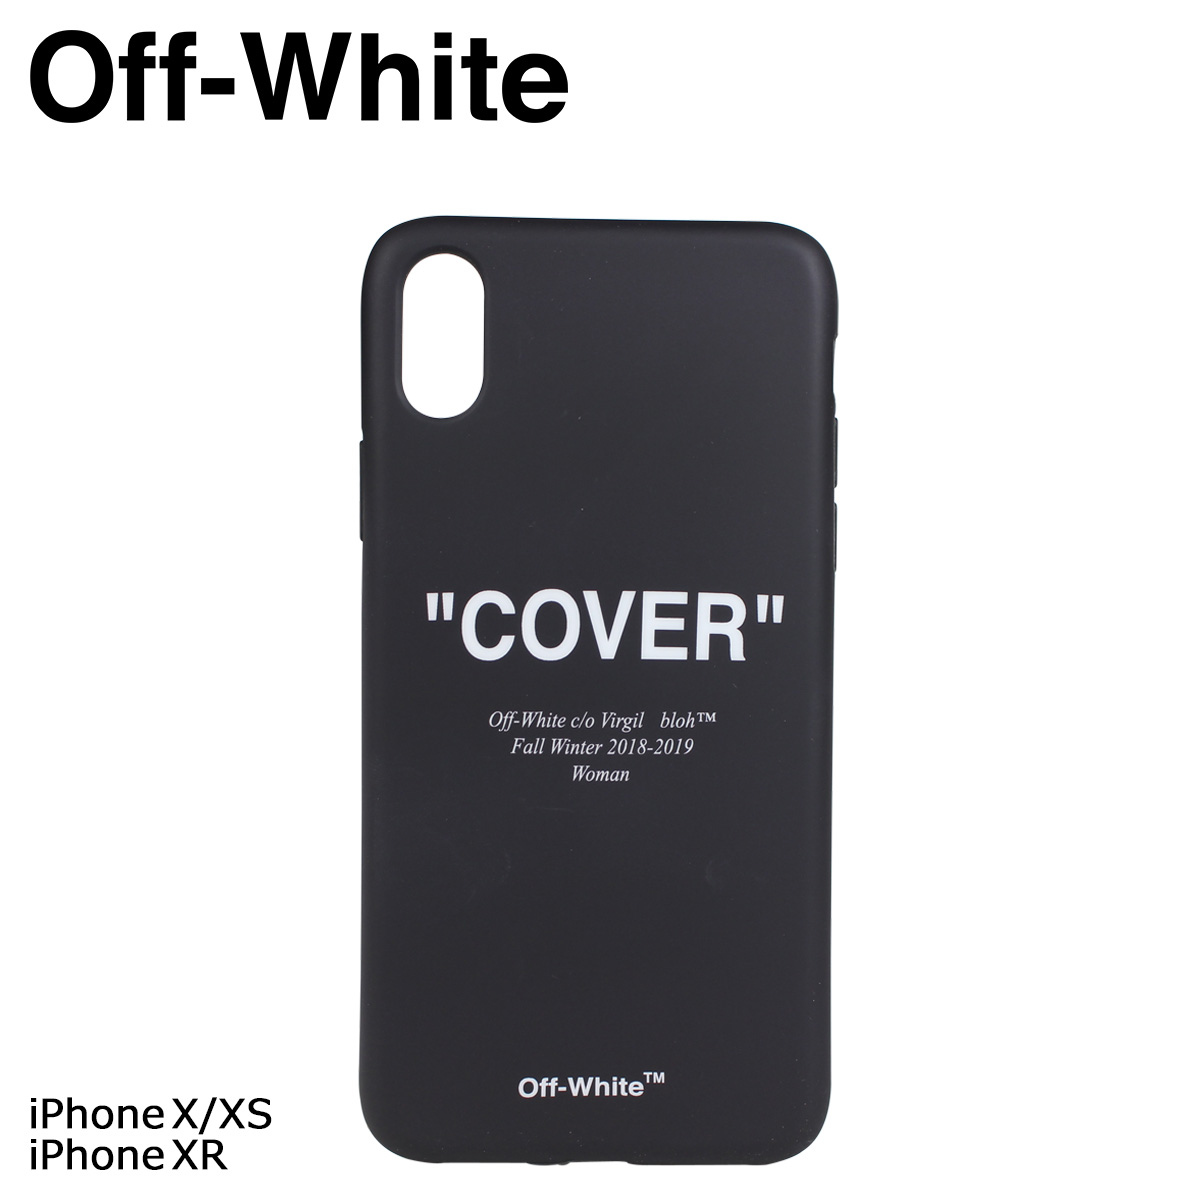 quality design 579c9 4397f Off-white iPhoneXS X QUOTED COVER off-white case smartphone eyephone Lady's  men black OWPA009 29404 [11/20 Shinnyu load]